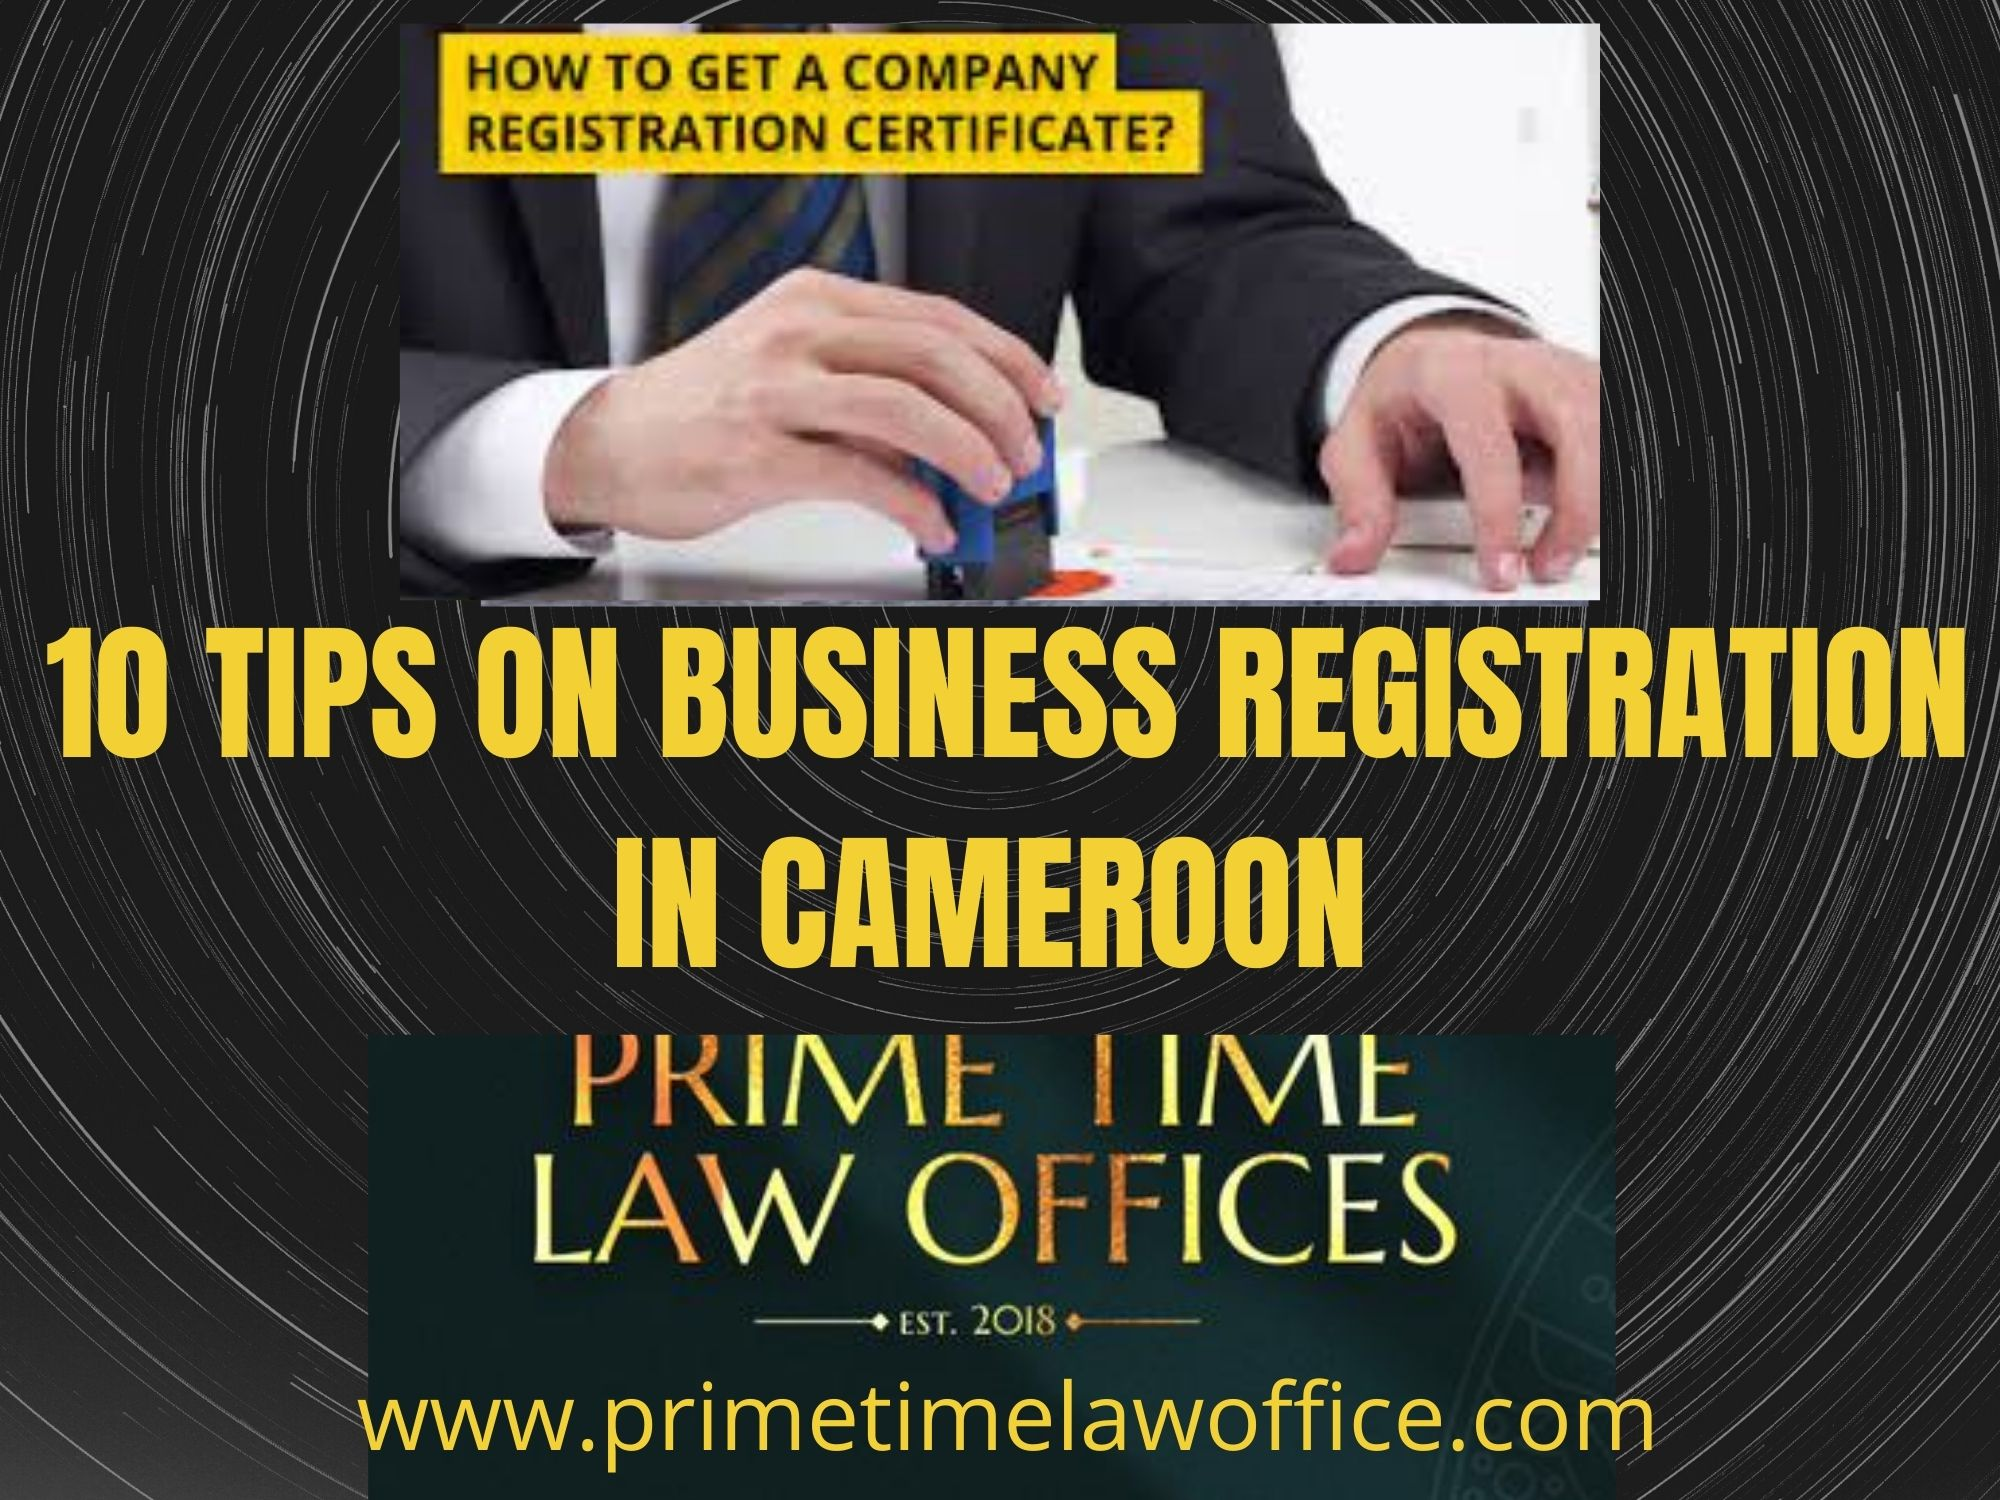 10 TIPS ON BUSINESS REGISTRATION IN CAMEROON